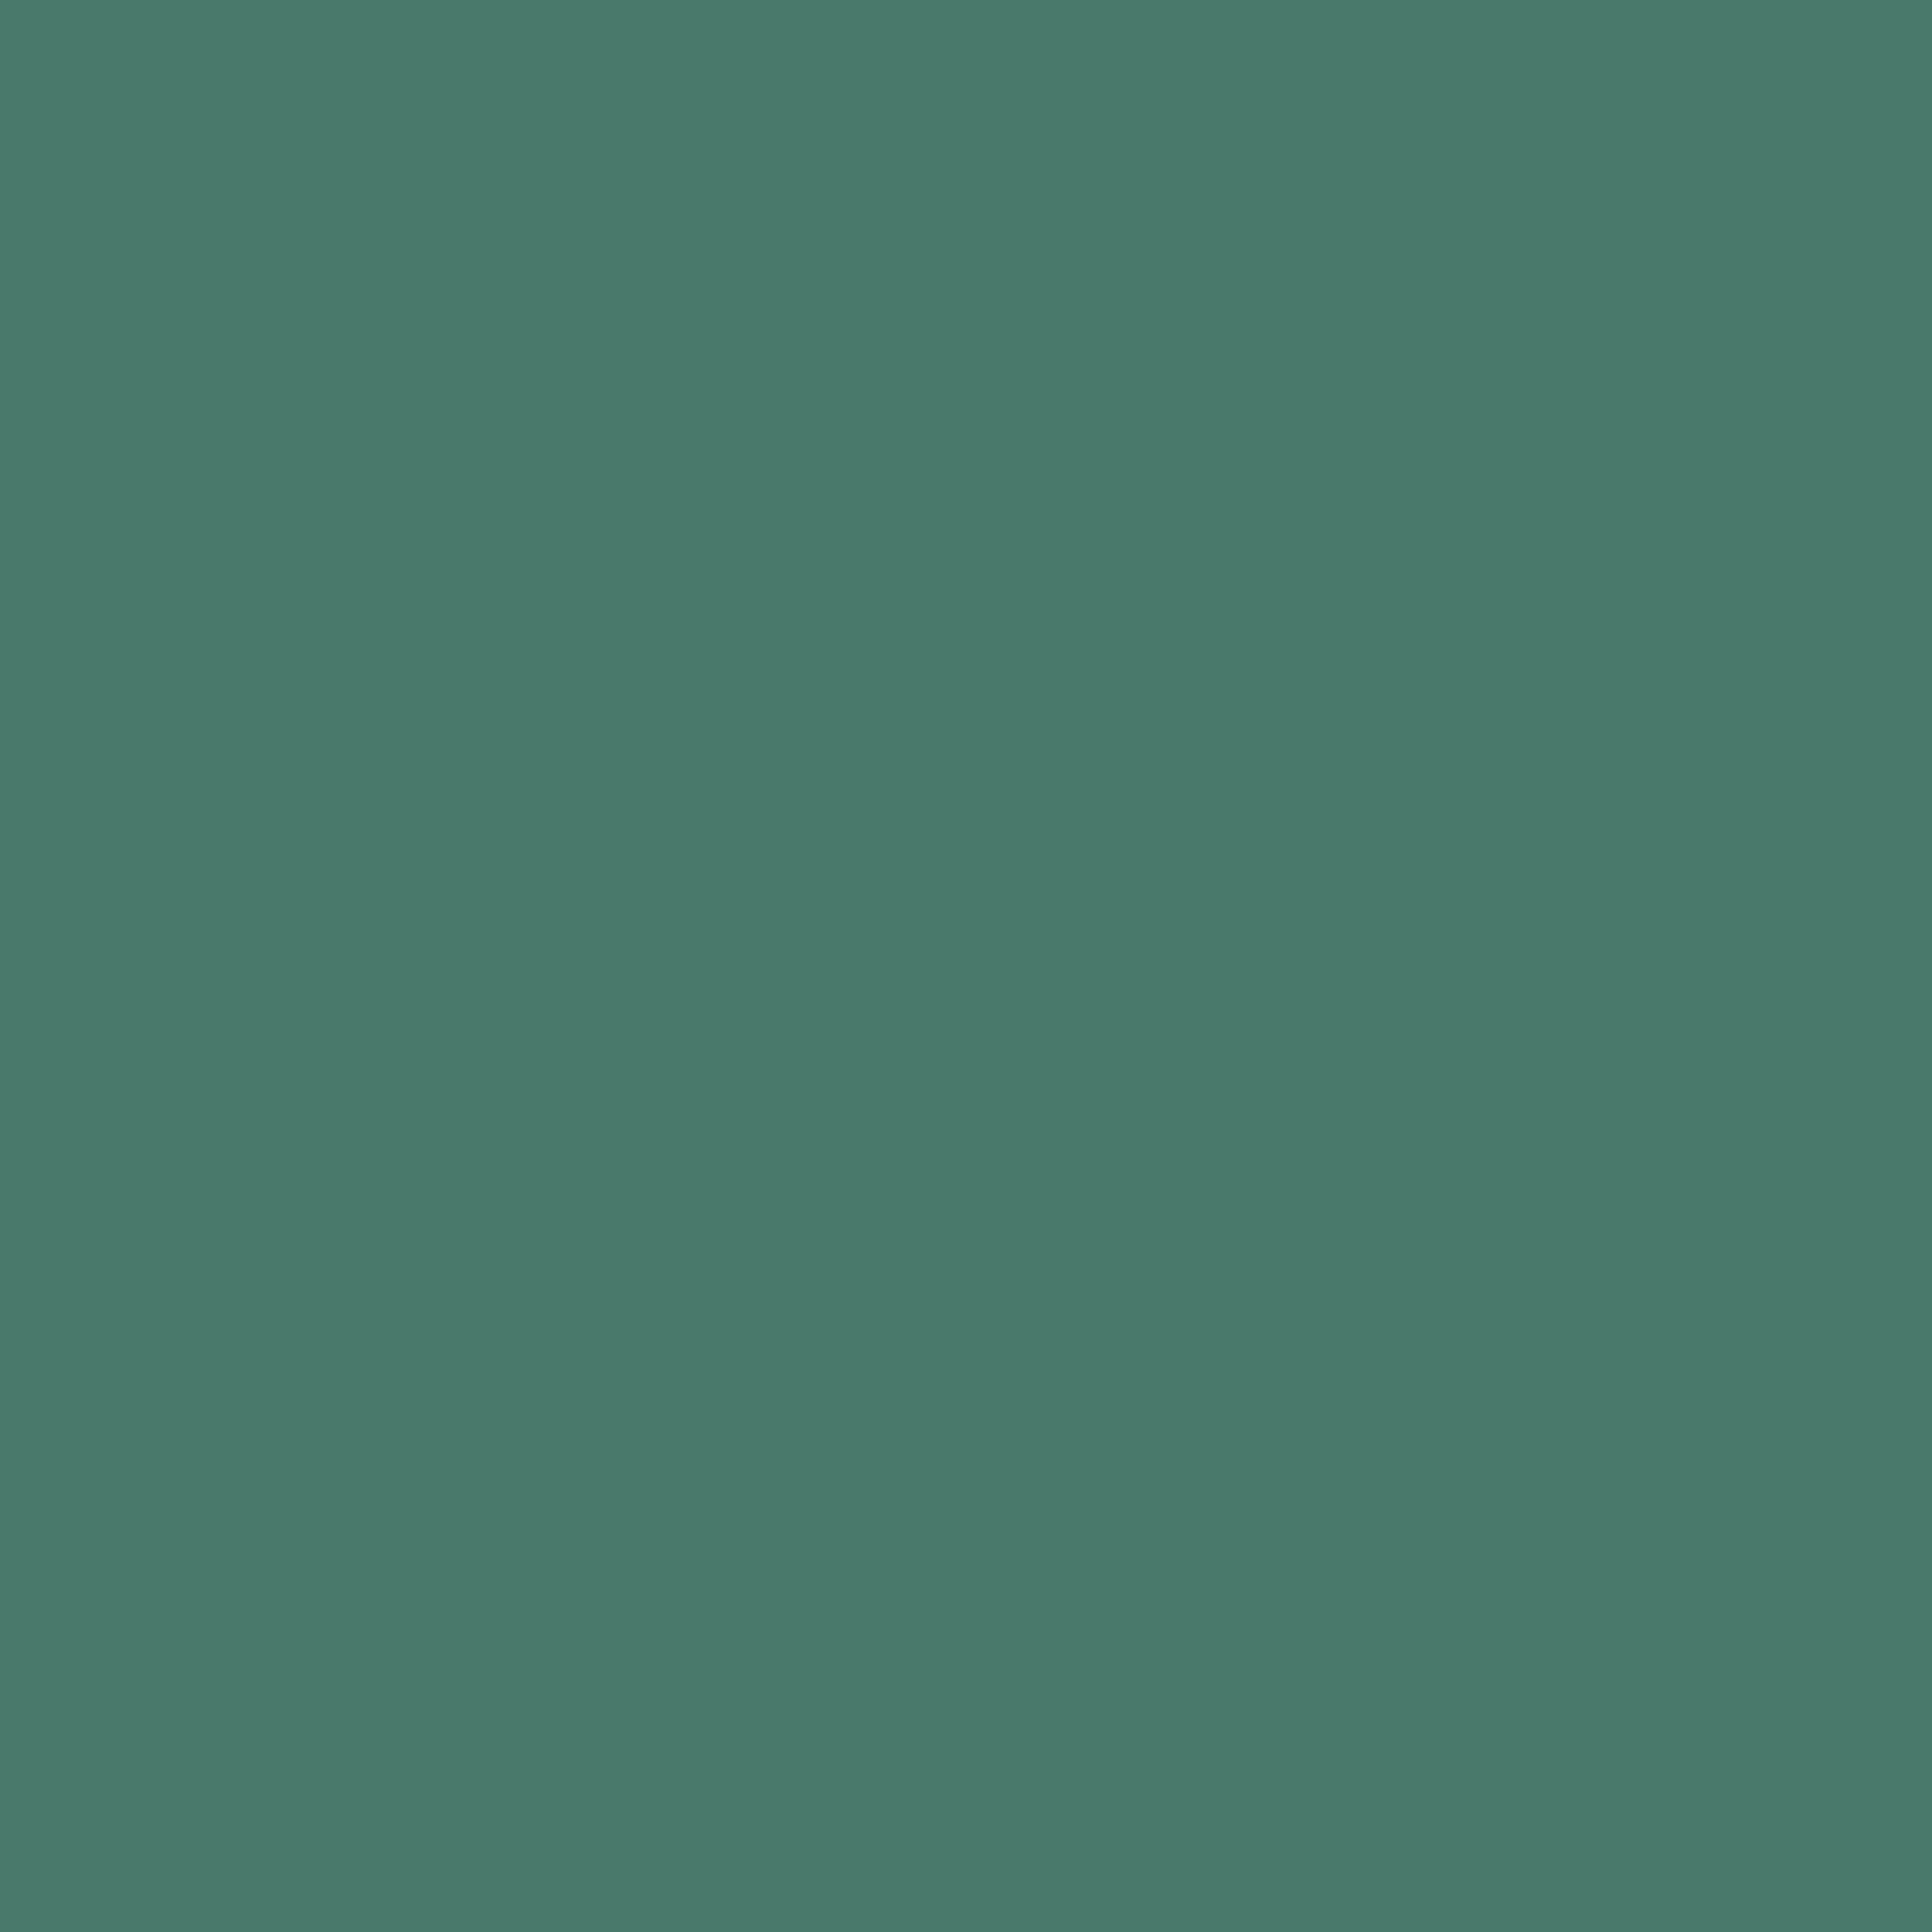 2048x2048 Hookers Green Solid Color Background